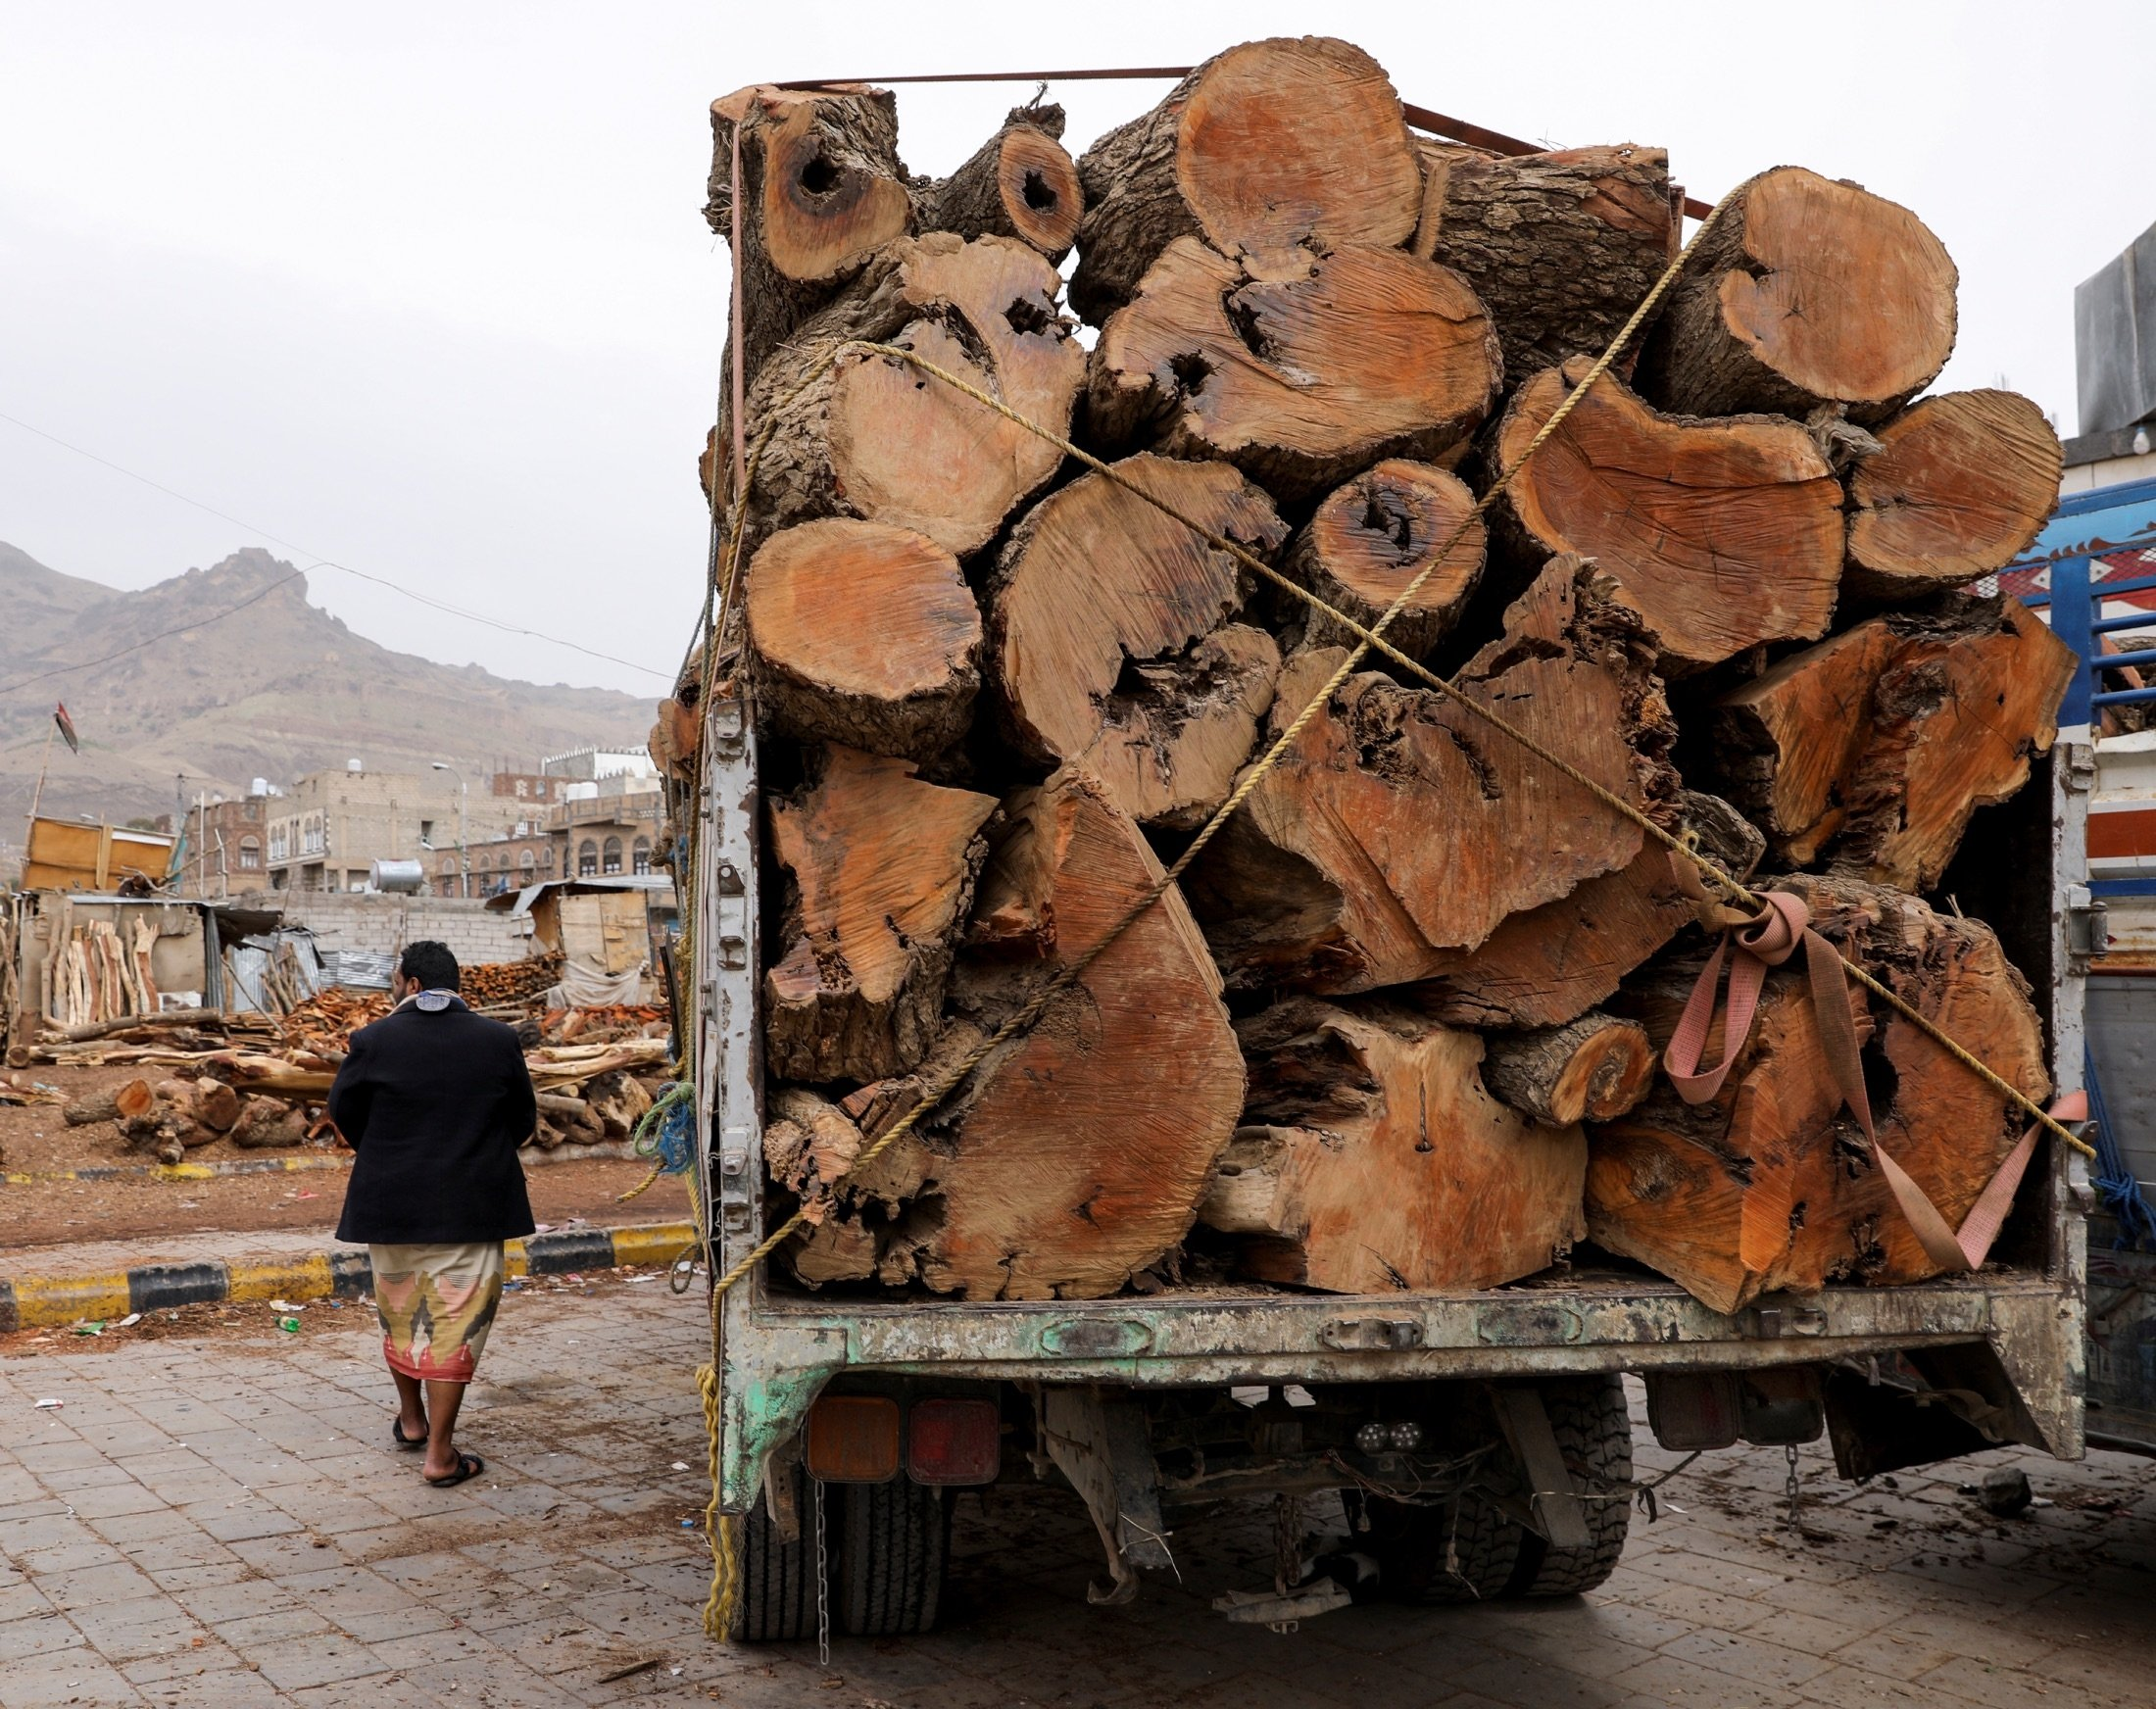 A man walks by a truck loaded with logs at a firewood market in Sanaa, Yemen, July 17, 2021. (Reuters Photo)